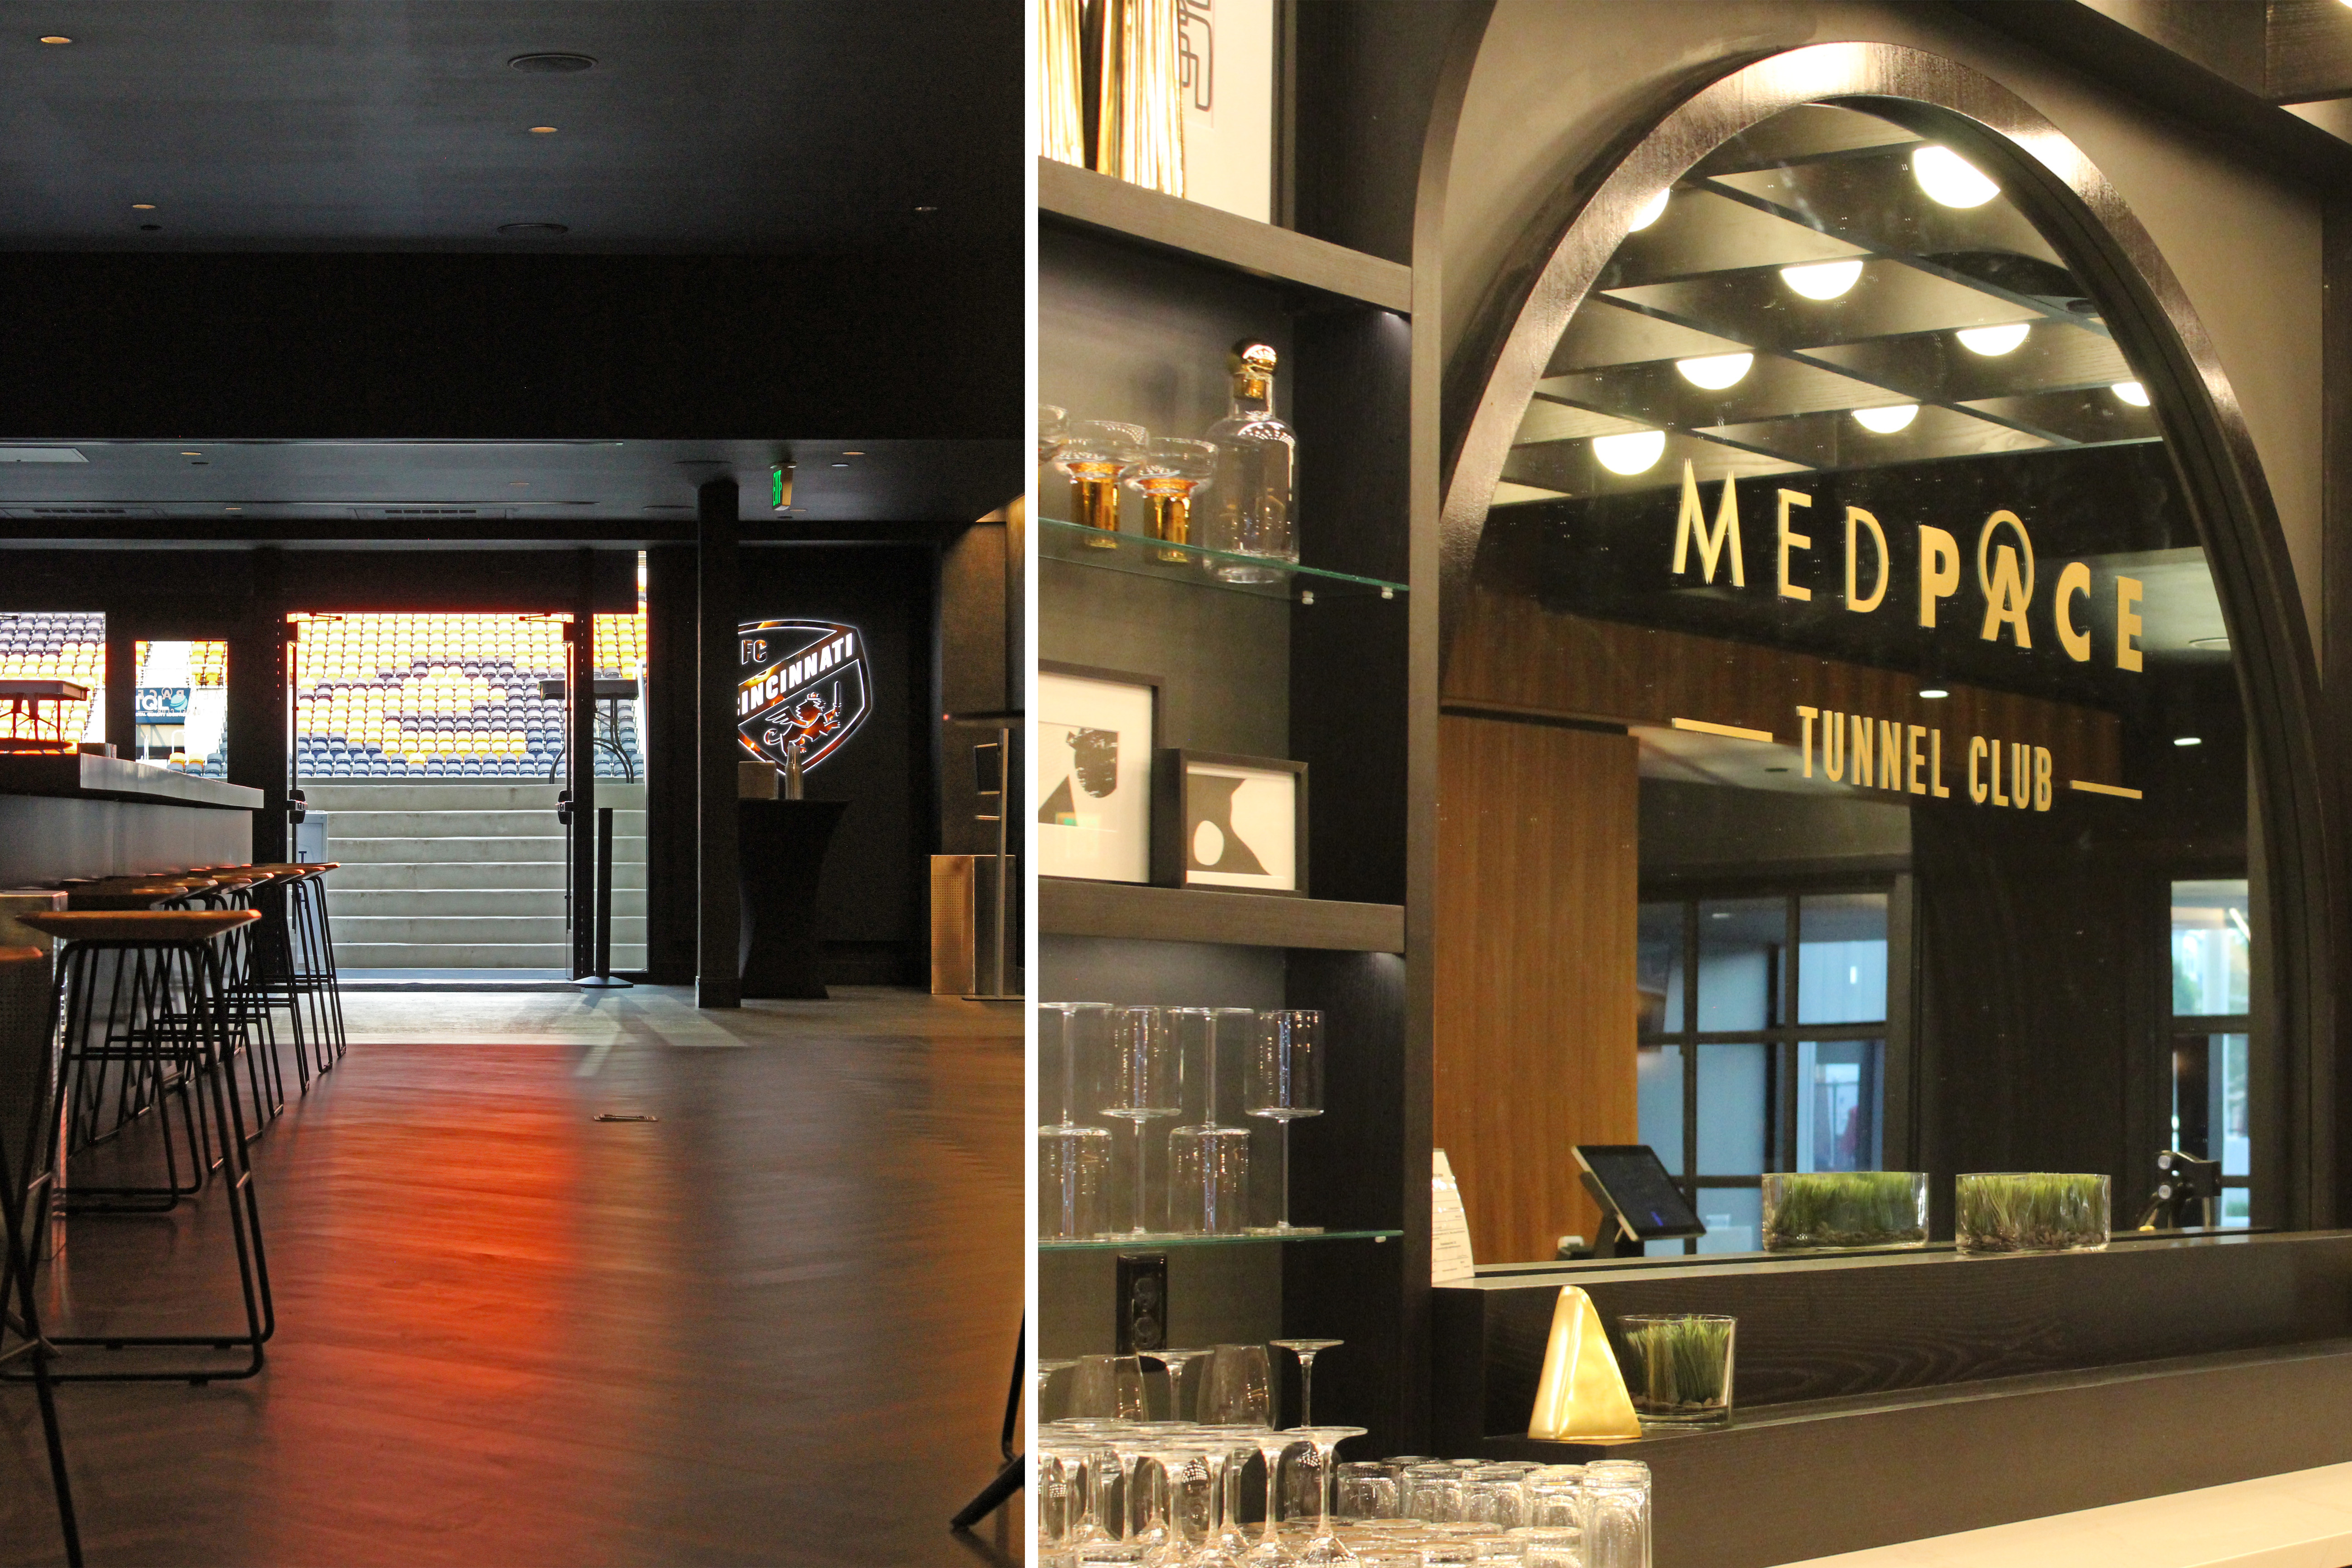 Medpace Tunnel Club